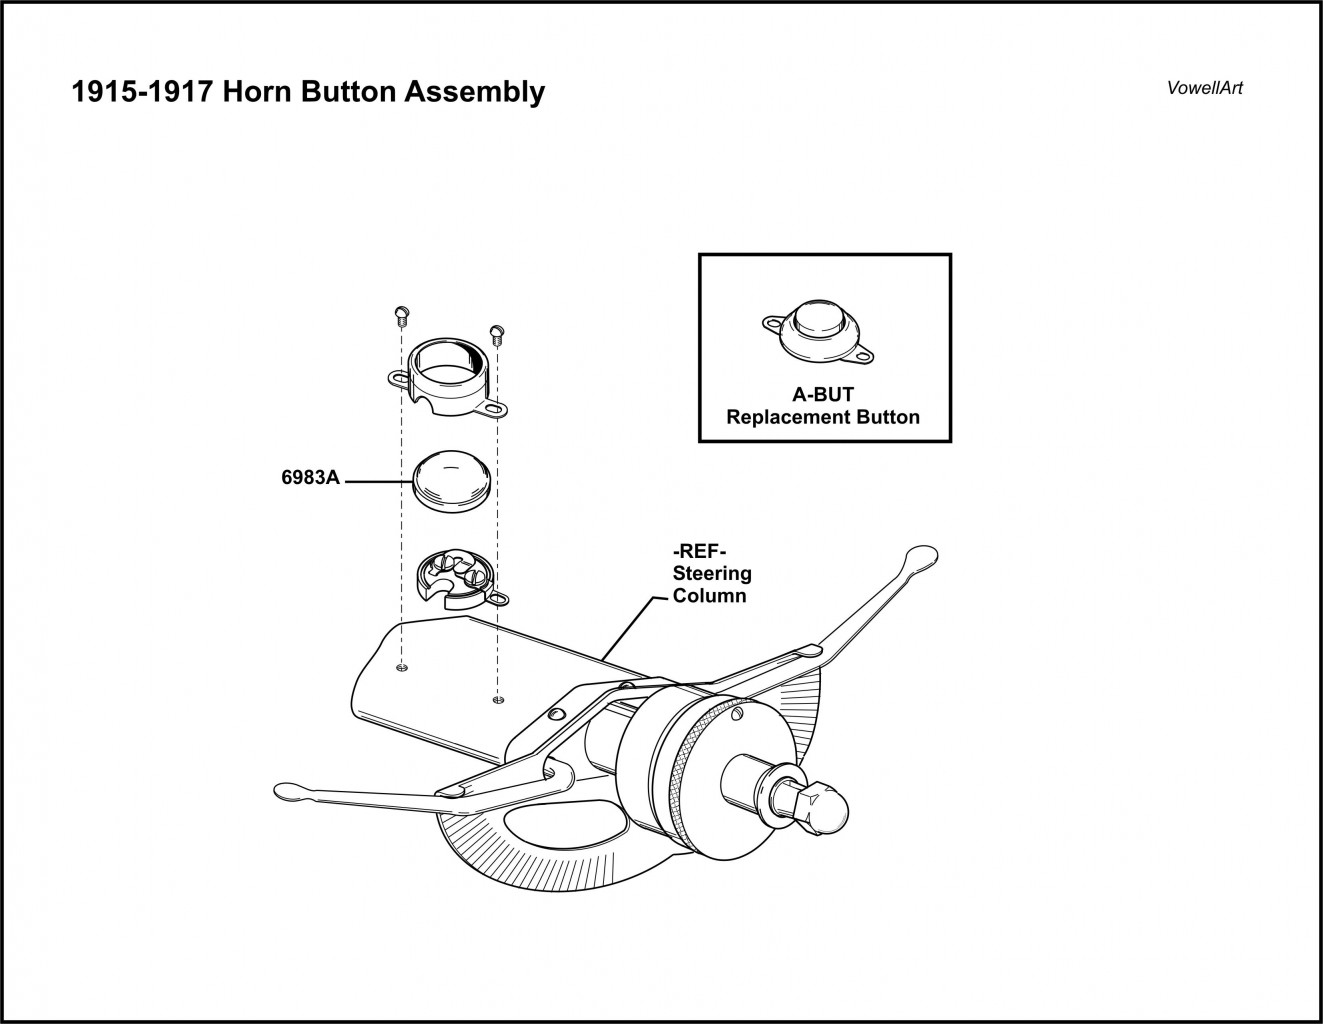 1915-1917 Horn Button Assembly